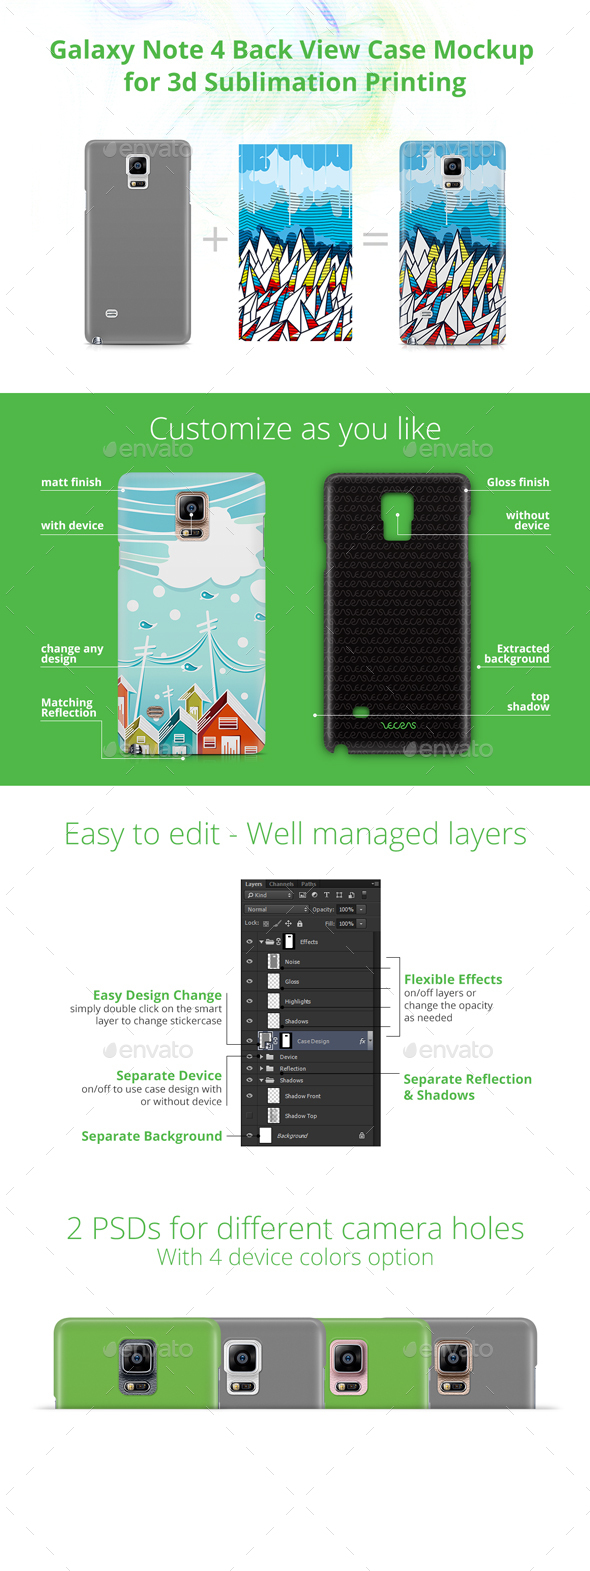 Galaxy Note 4 Case Design Mockup for 3d Sublimation Printing - Back View